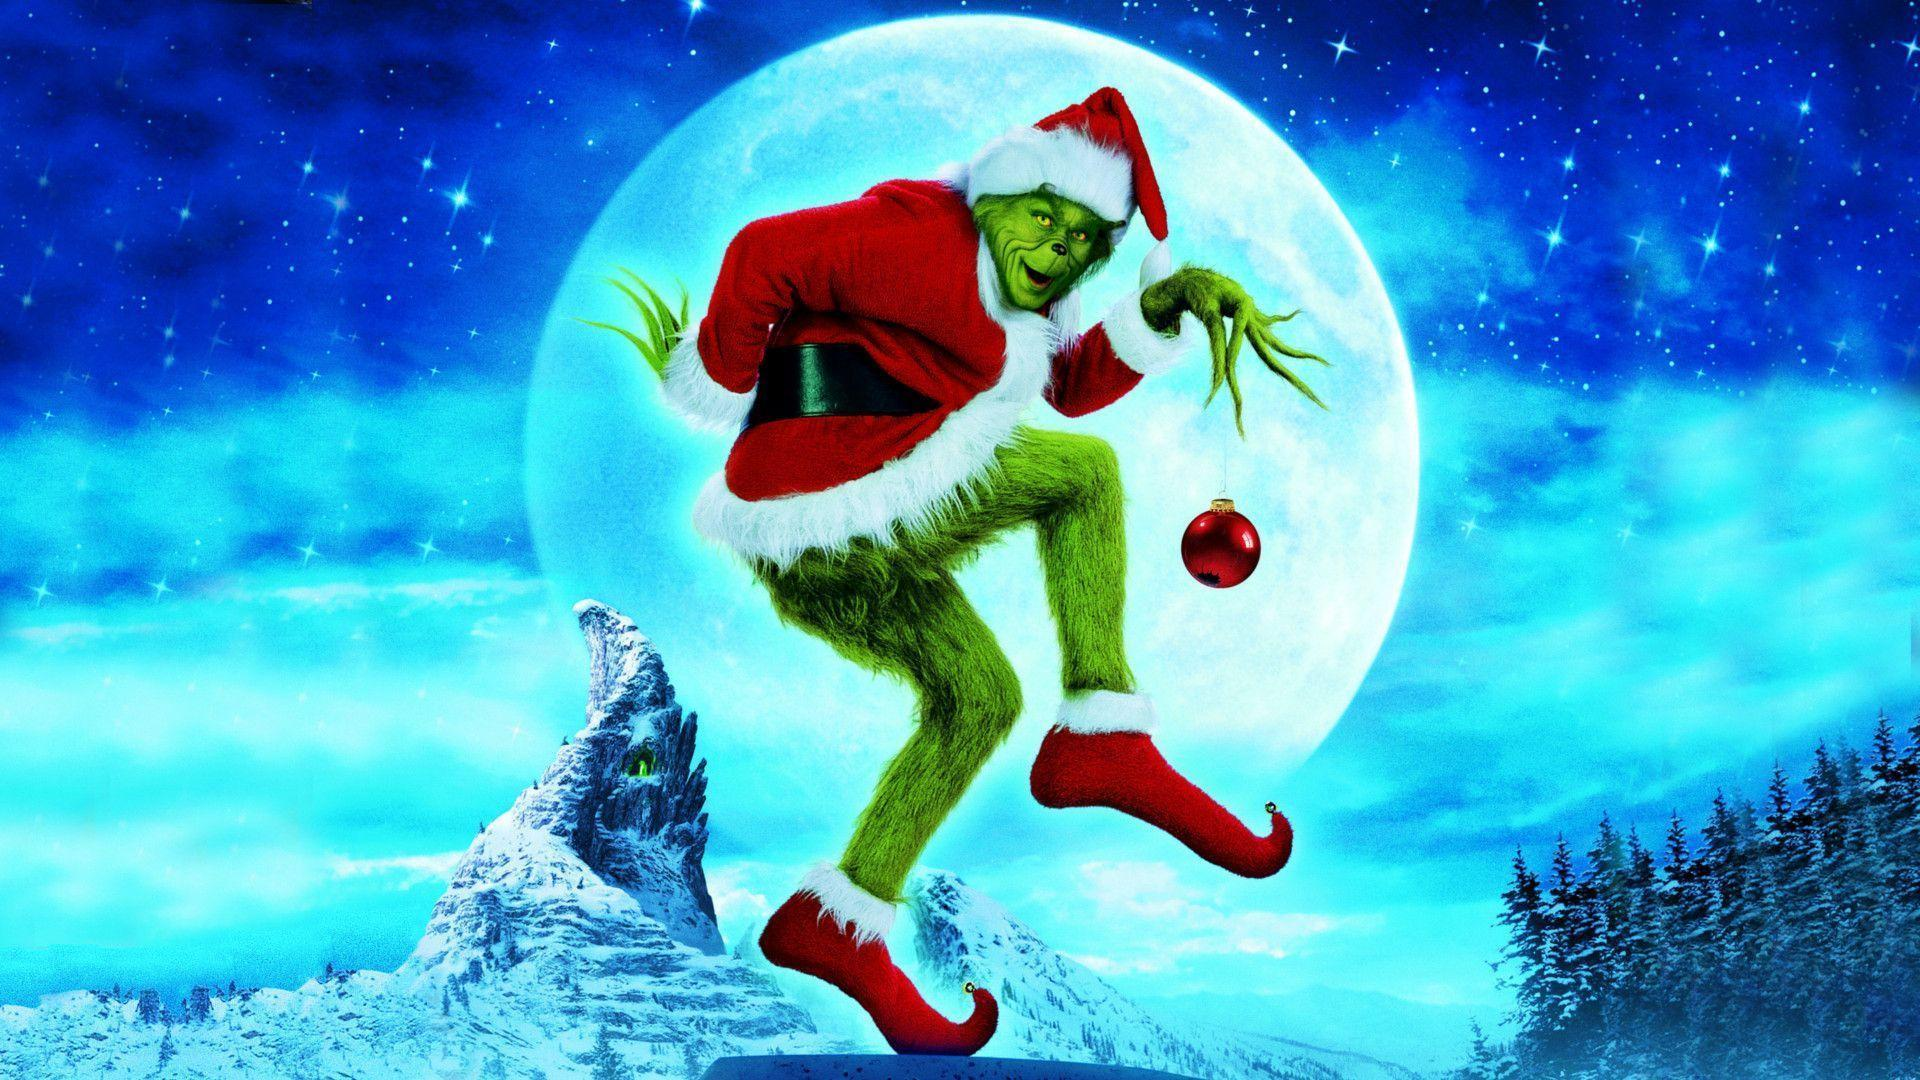 grinch wallpapers hd - photo #4